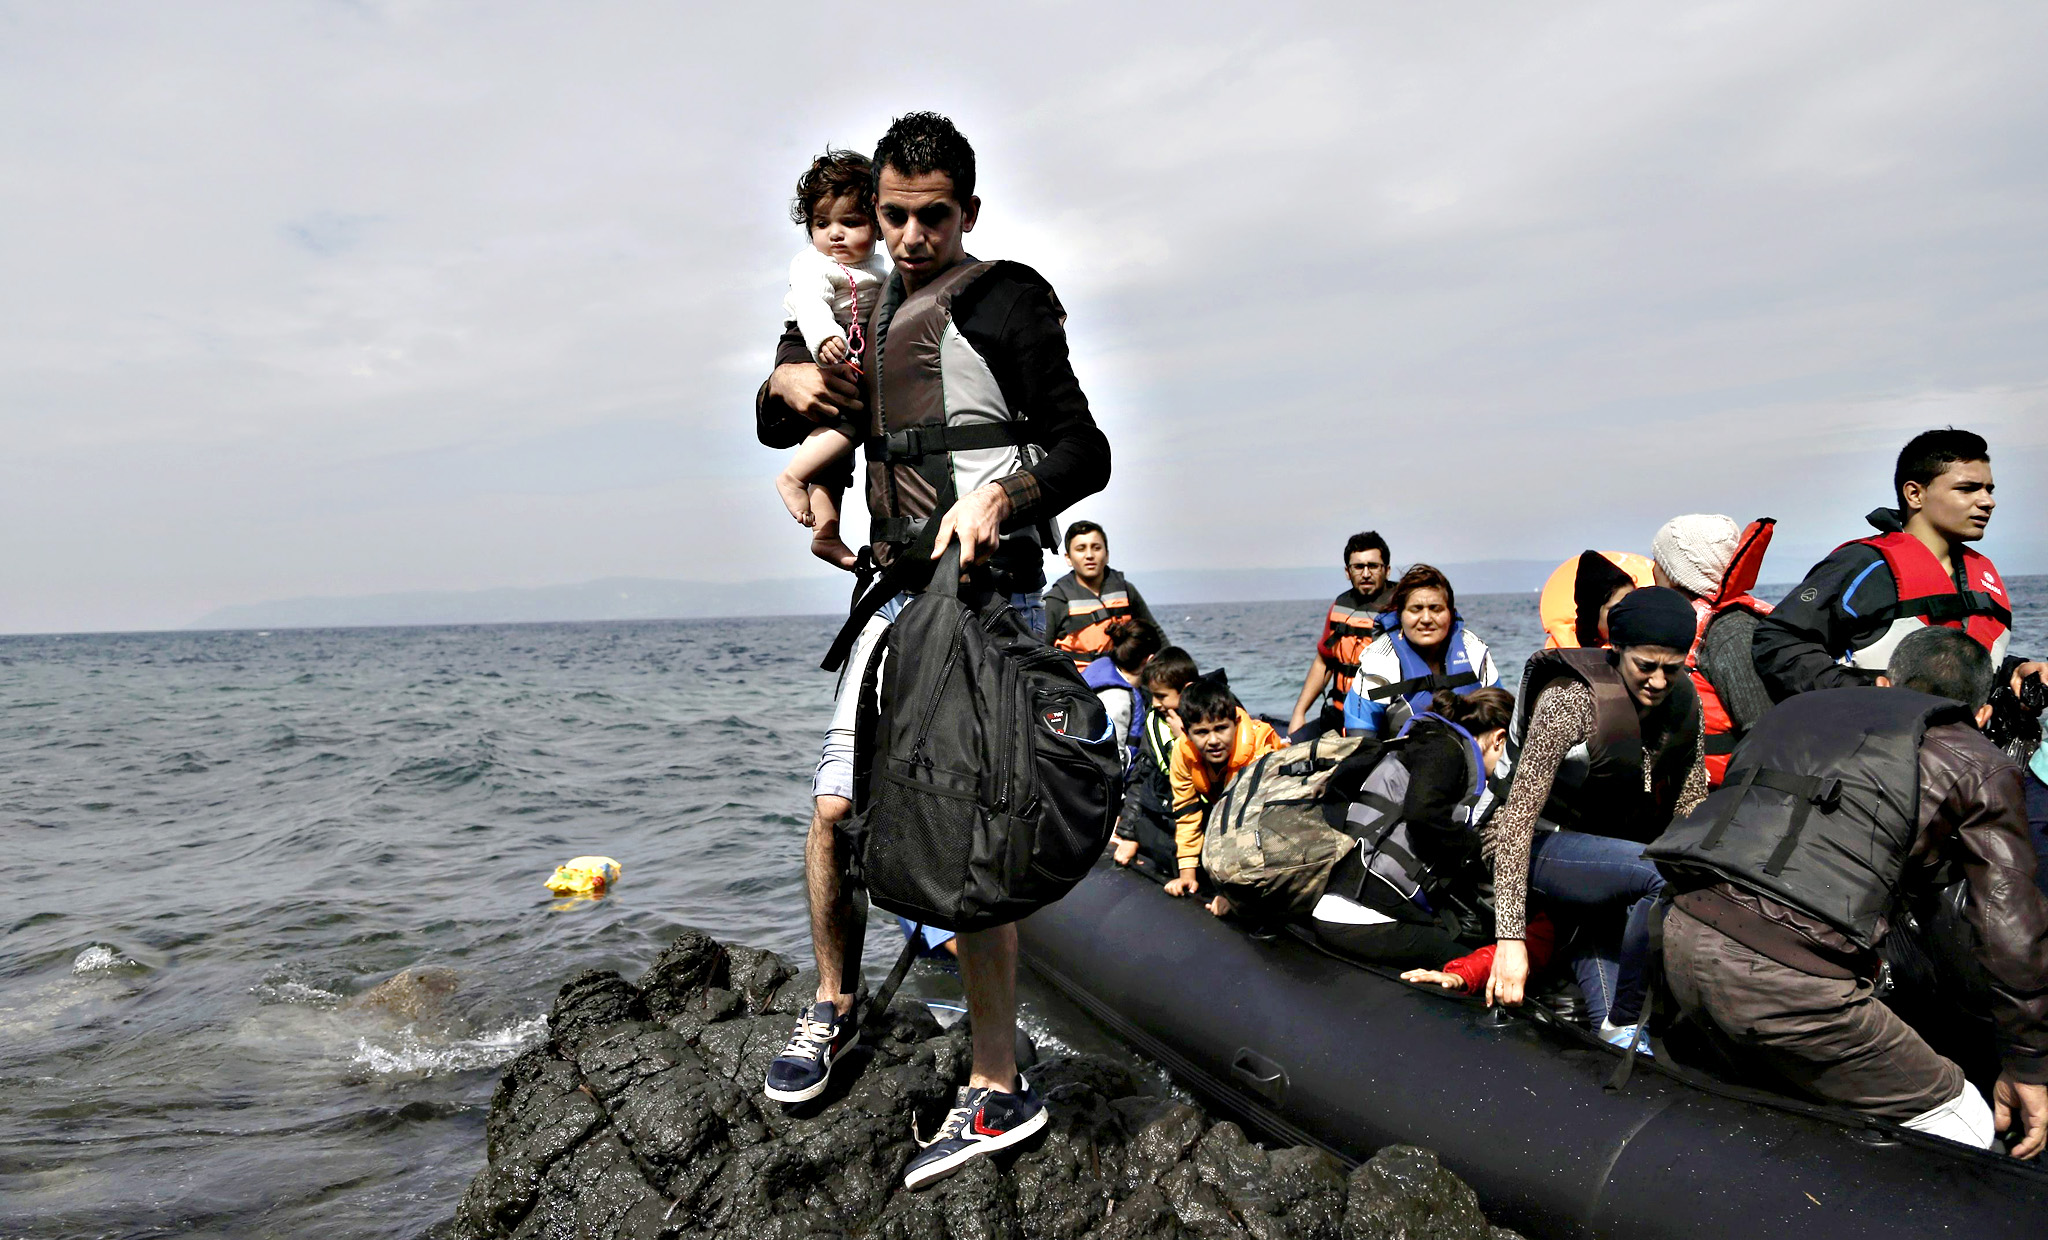 Refugees and migrants arrive at the island of Lesbos after crossing the Aegean see from Turkey, Greece, 08 October 2015